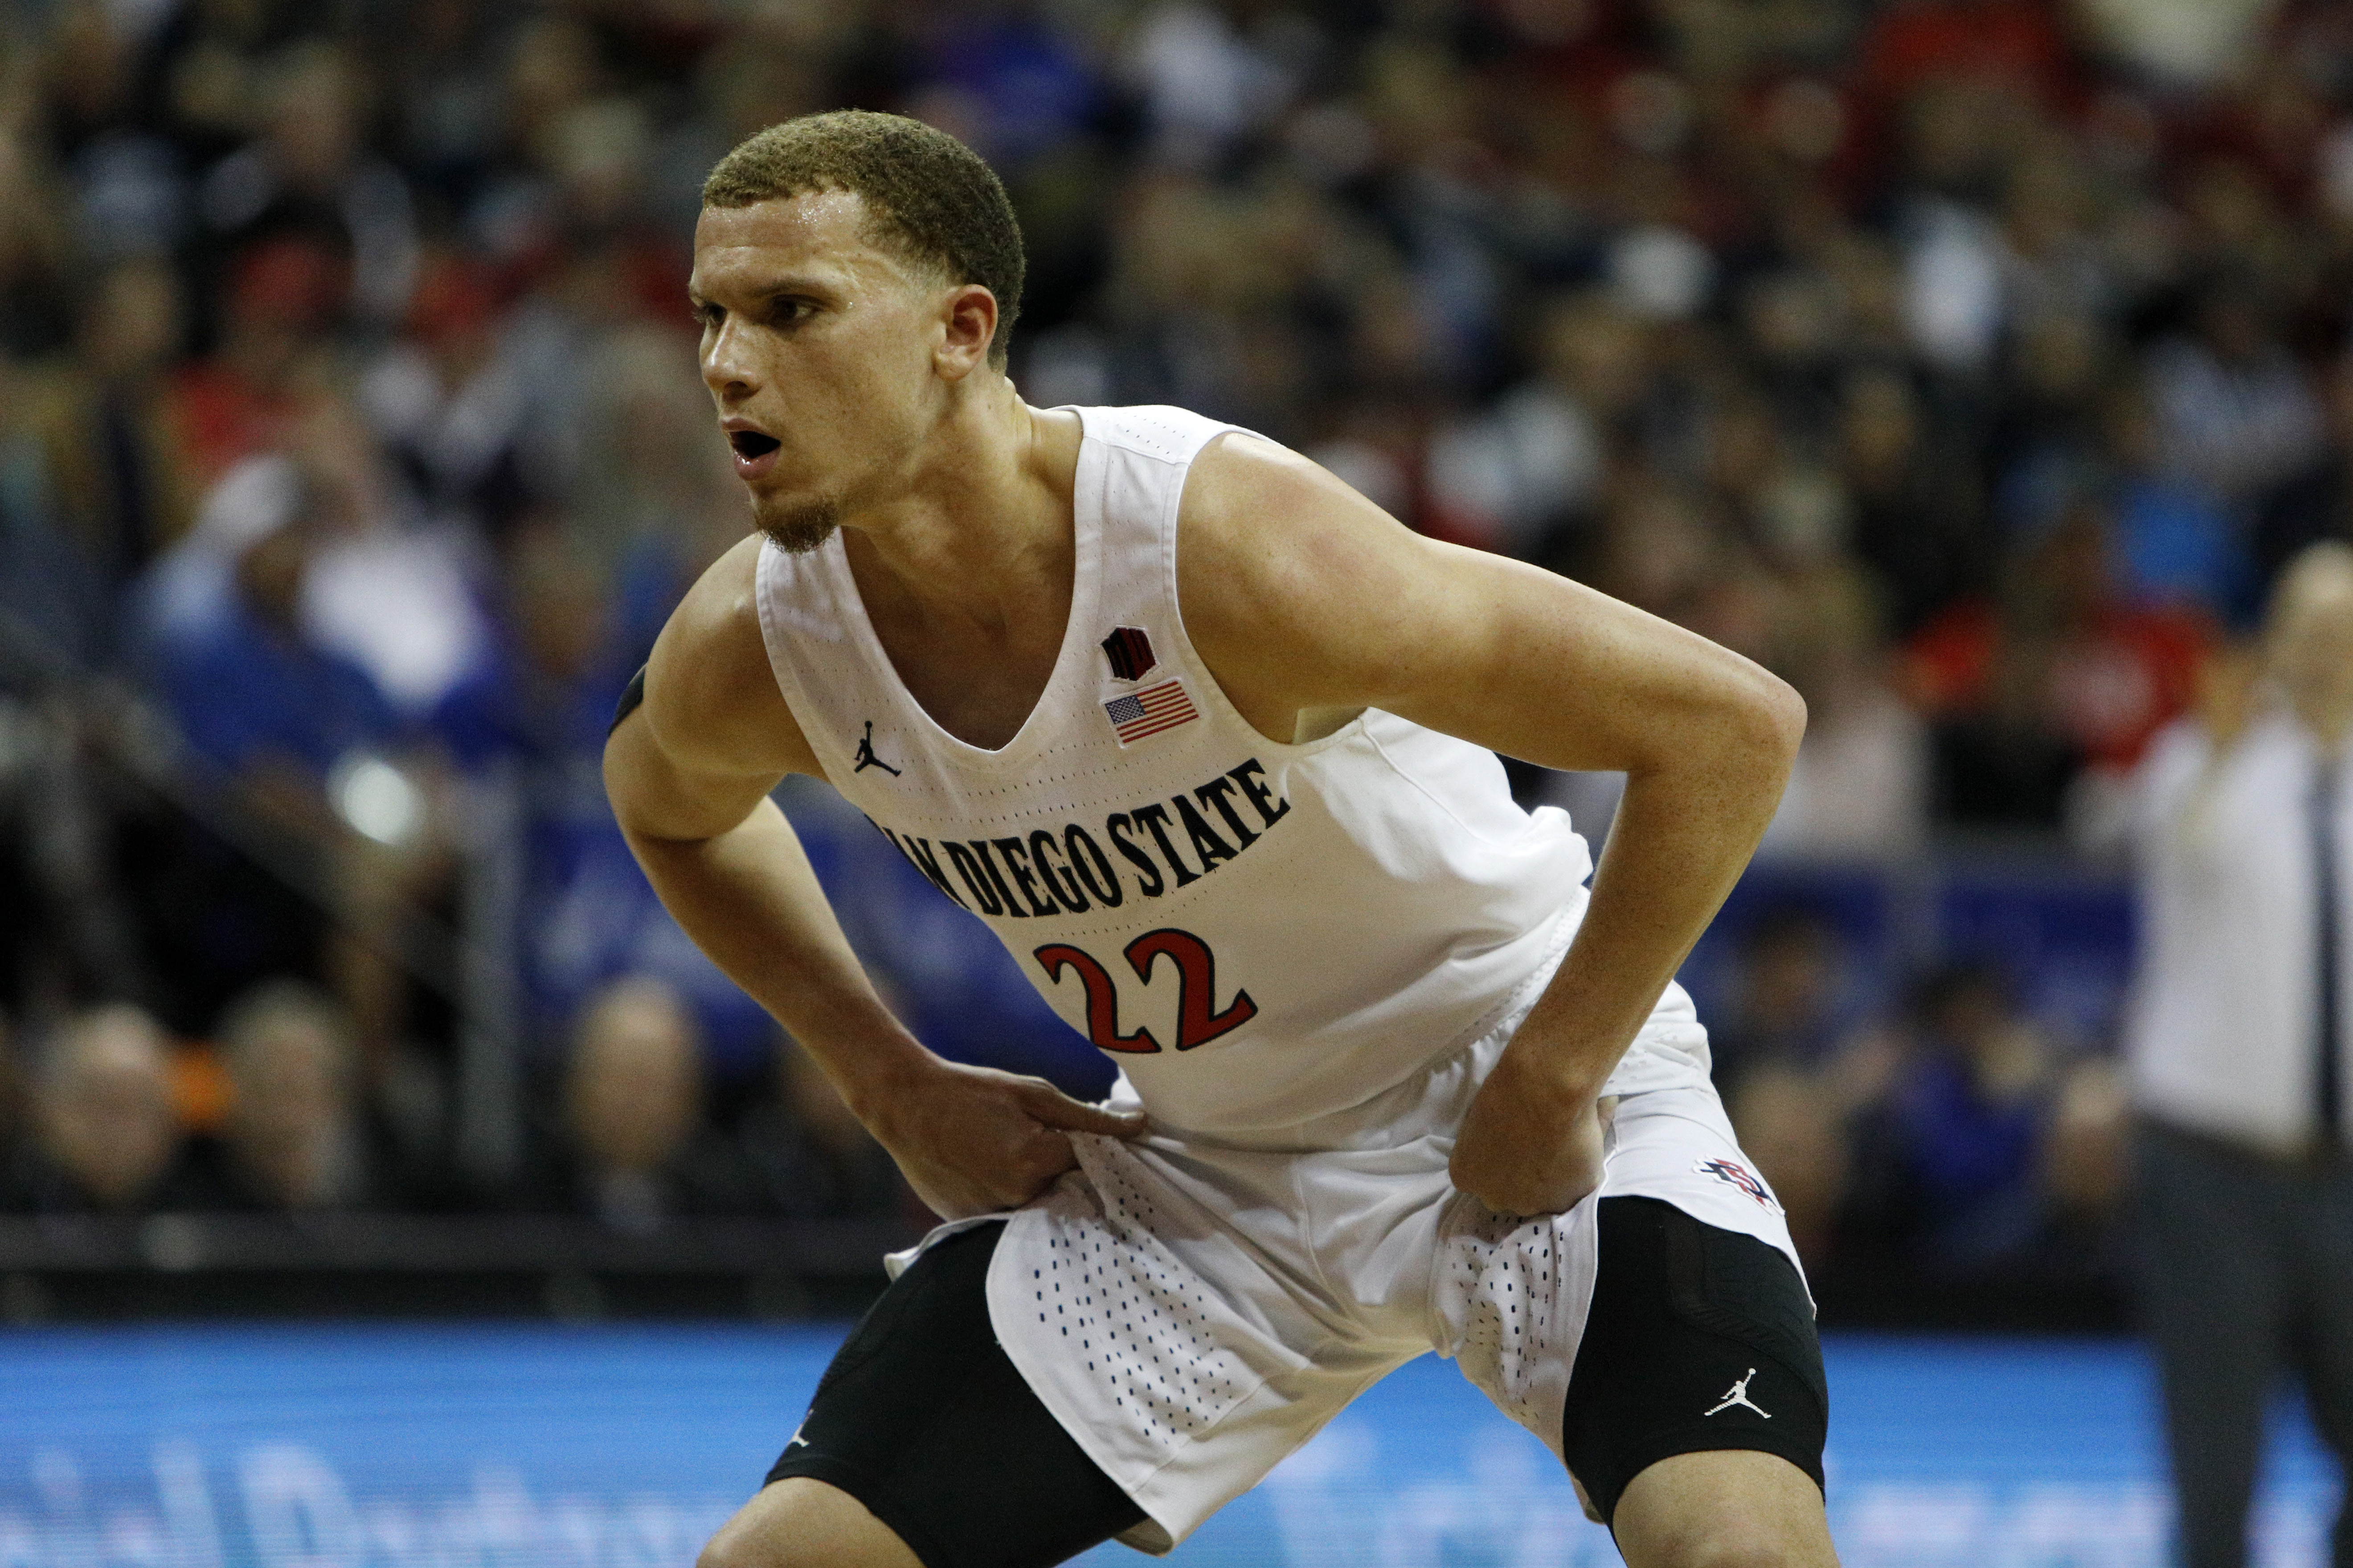 Mountain West Conference Basketball Tournament - San Diego State v Utah State